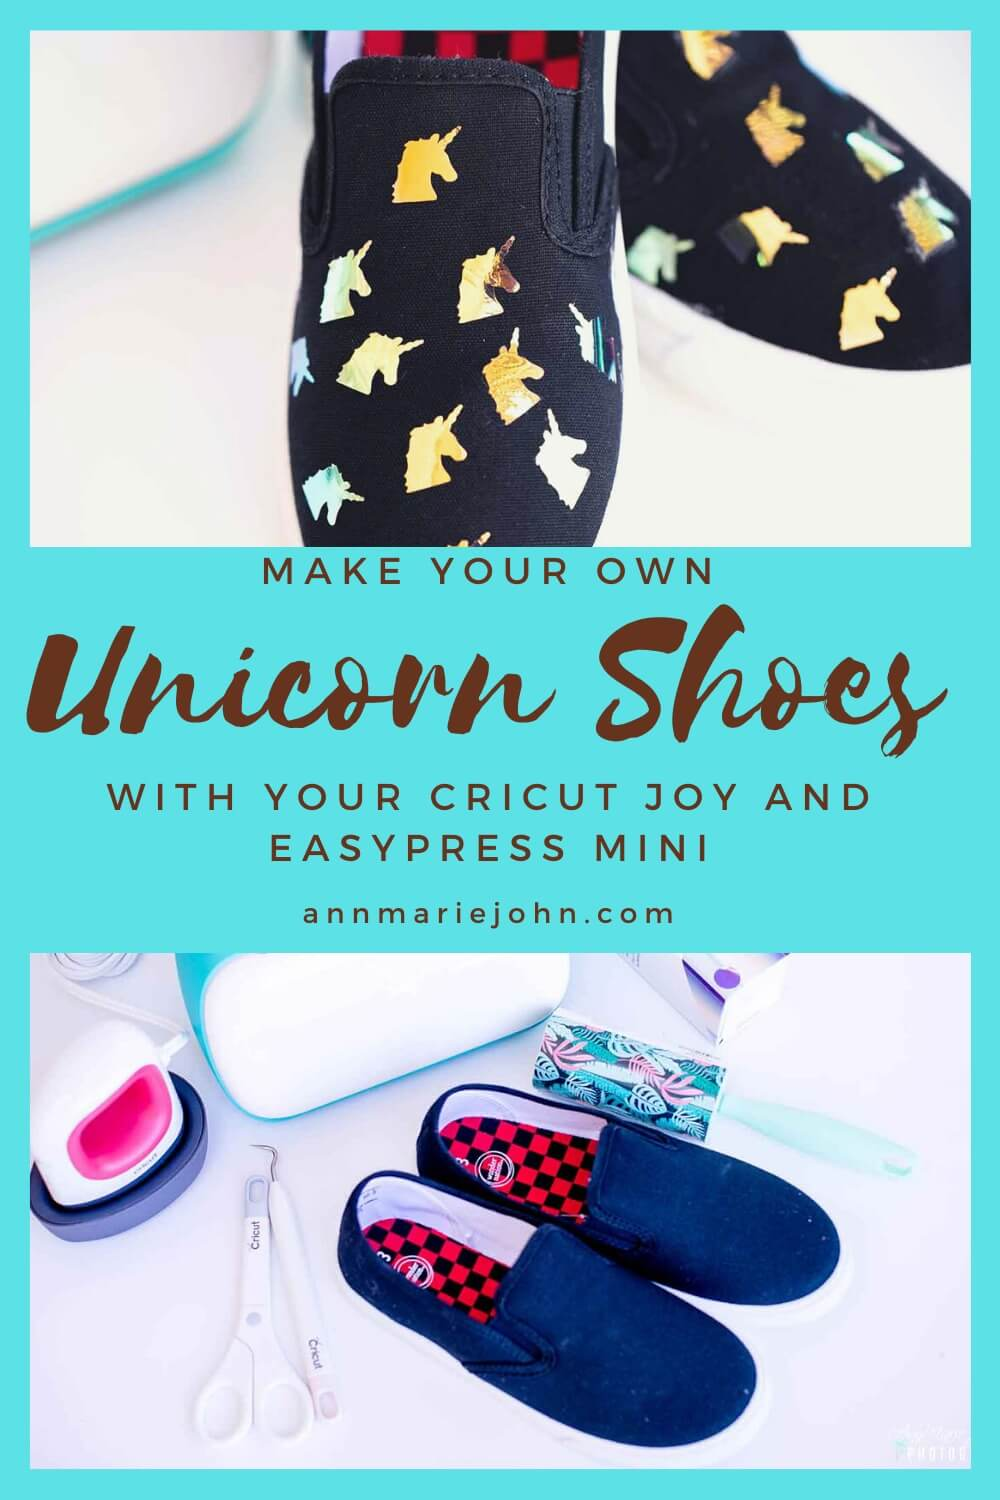 Unicorn Shoes with the Cricut Joy and EasyPress Mini.